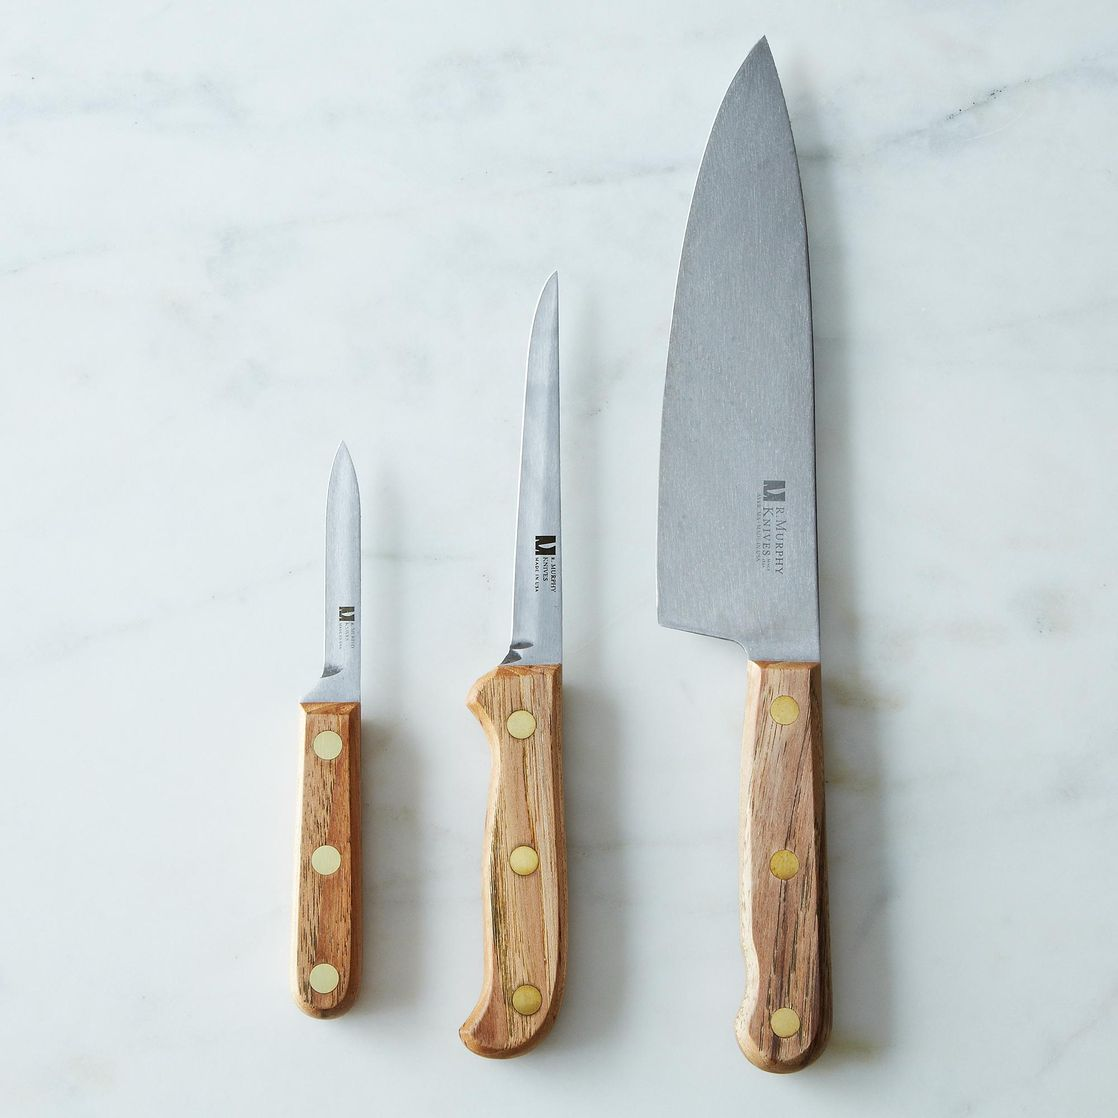 R. Murphy Reclaimed Wood Carbon Steel Knife on Food52